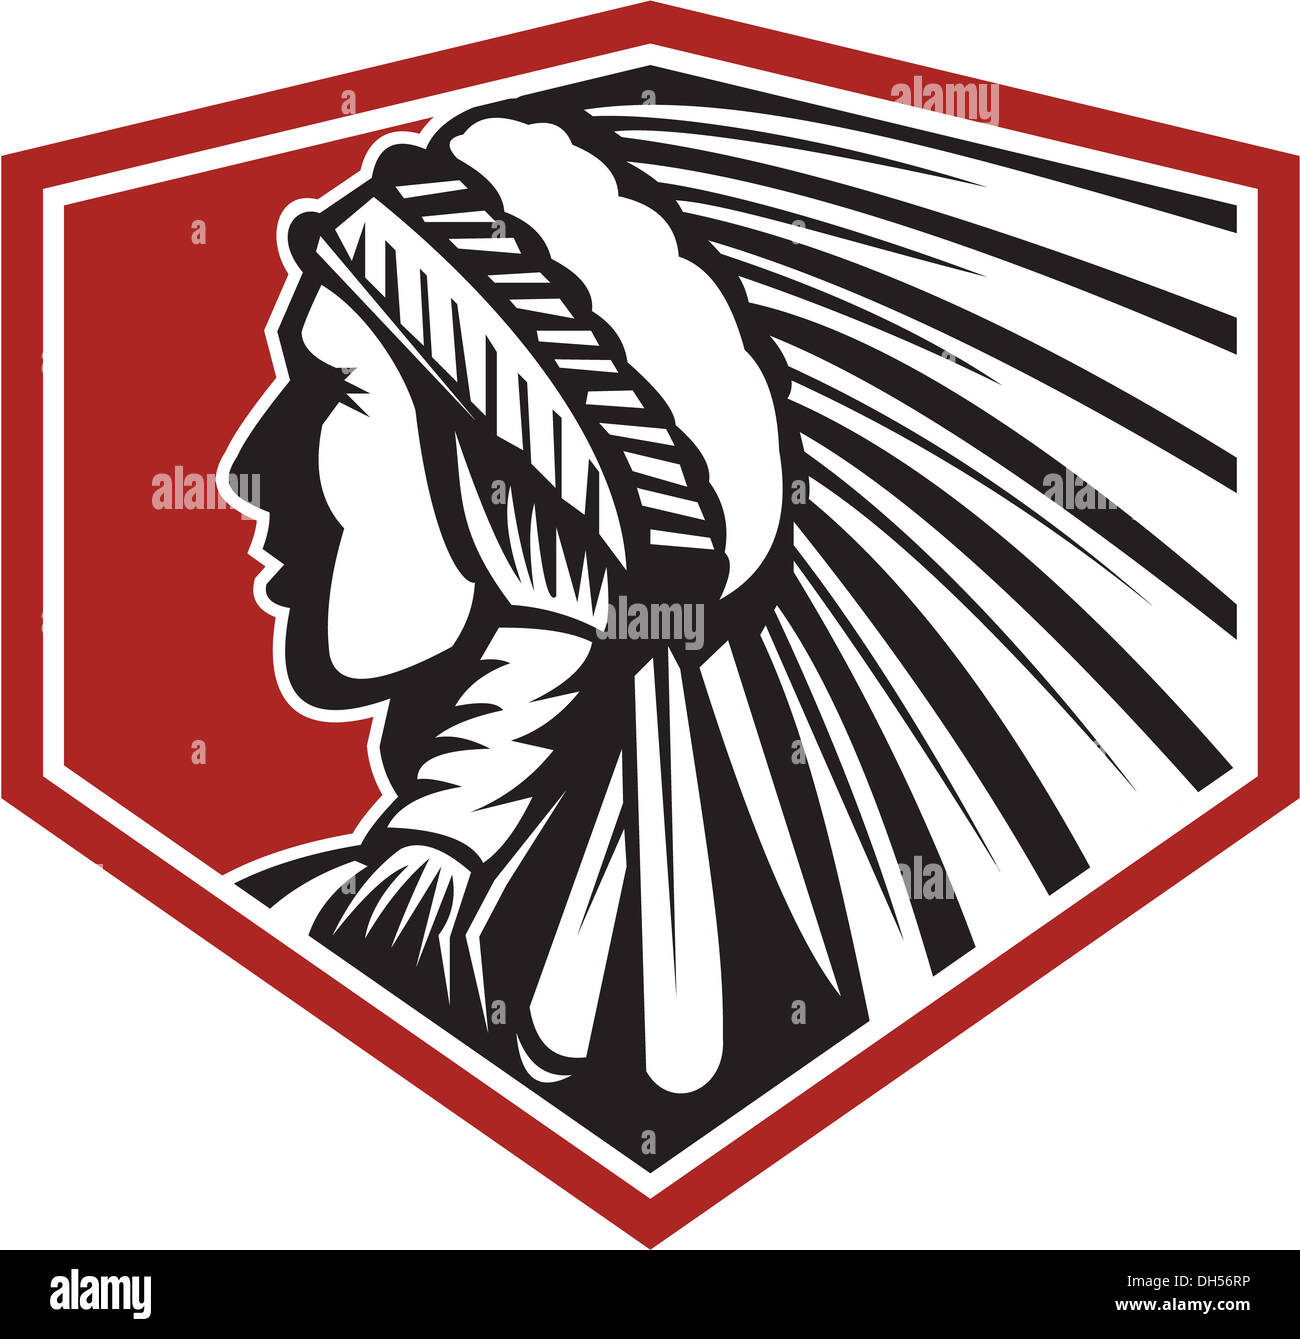 Illustration of a native american indian chief wearing feathers headdress viewed from side done in retro style on isolated white background. - Stock Image